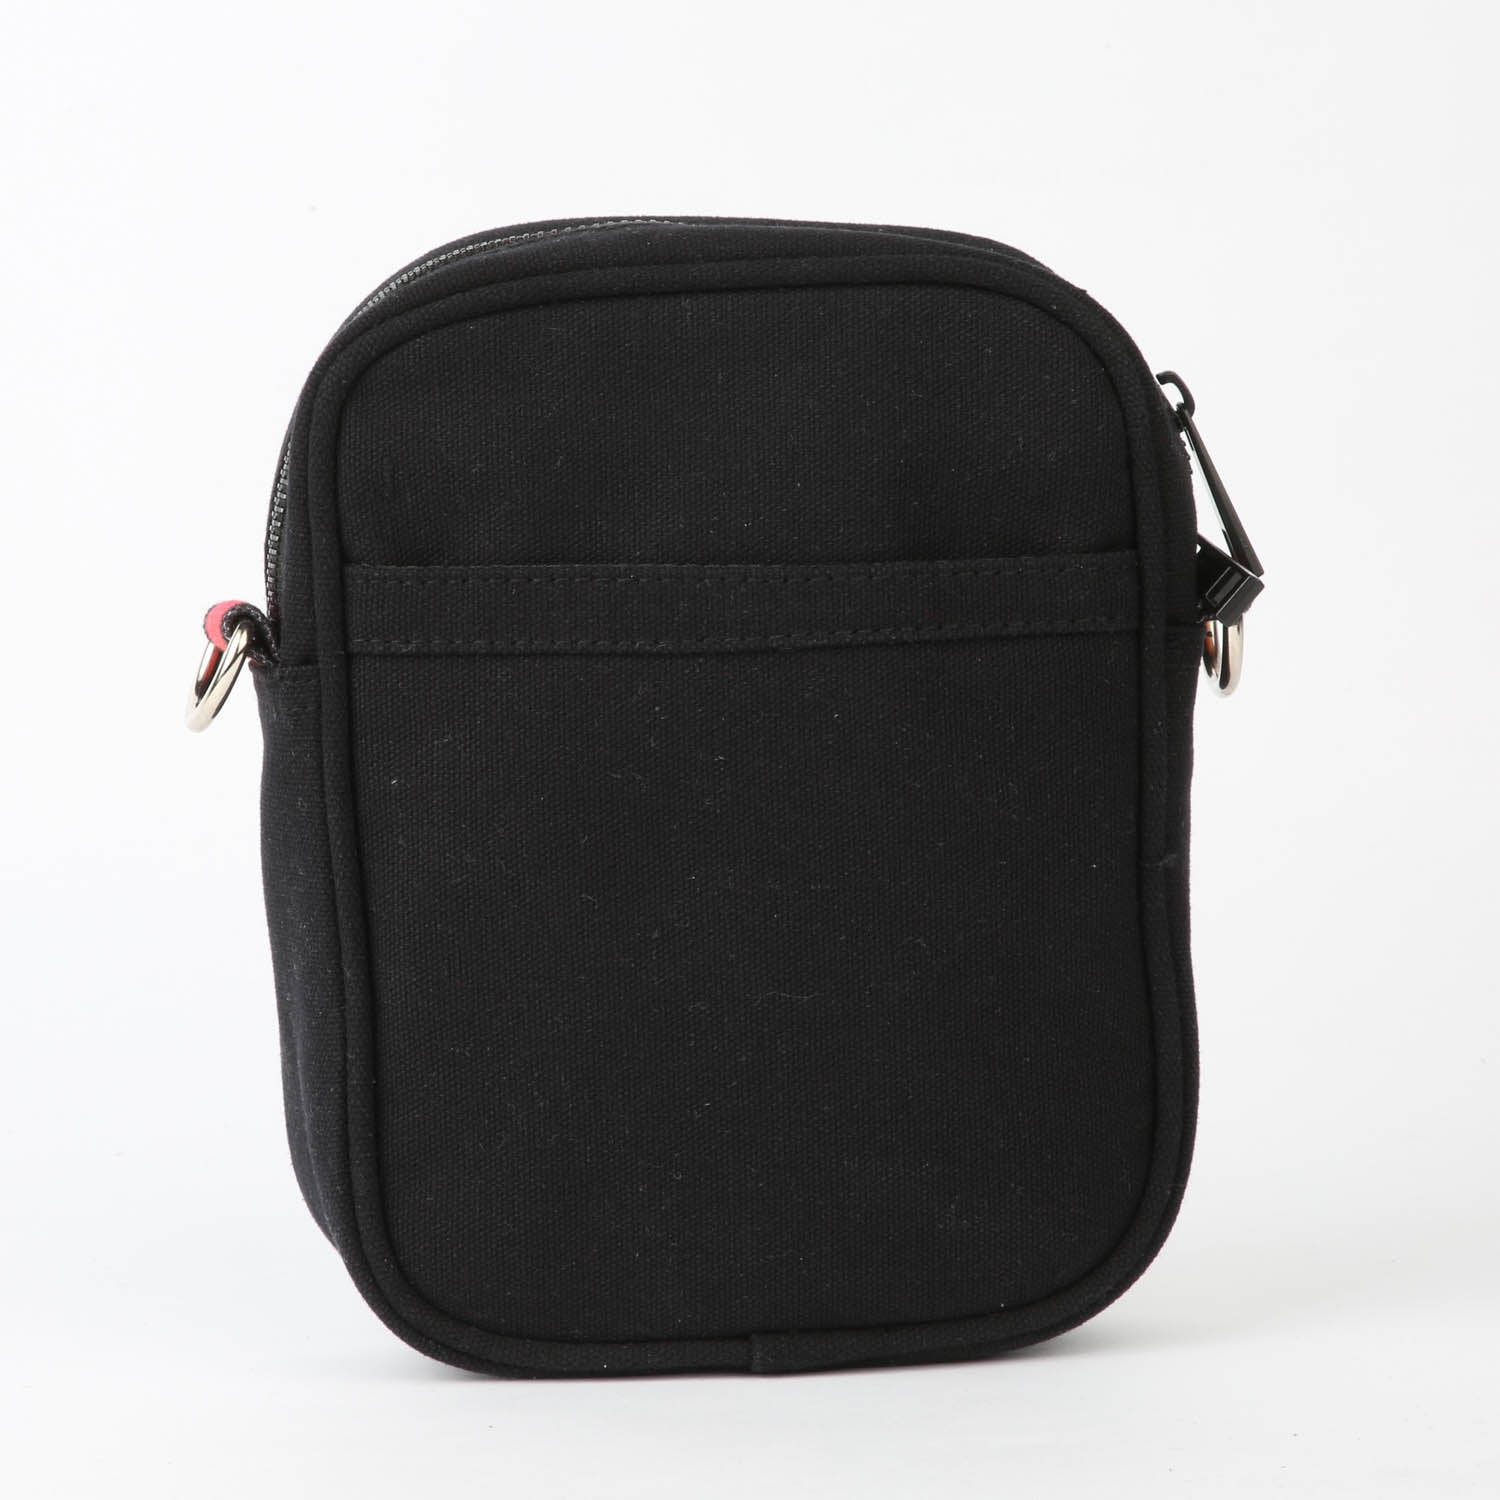 RAINBOW SHOULDER BAG - Black